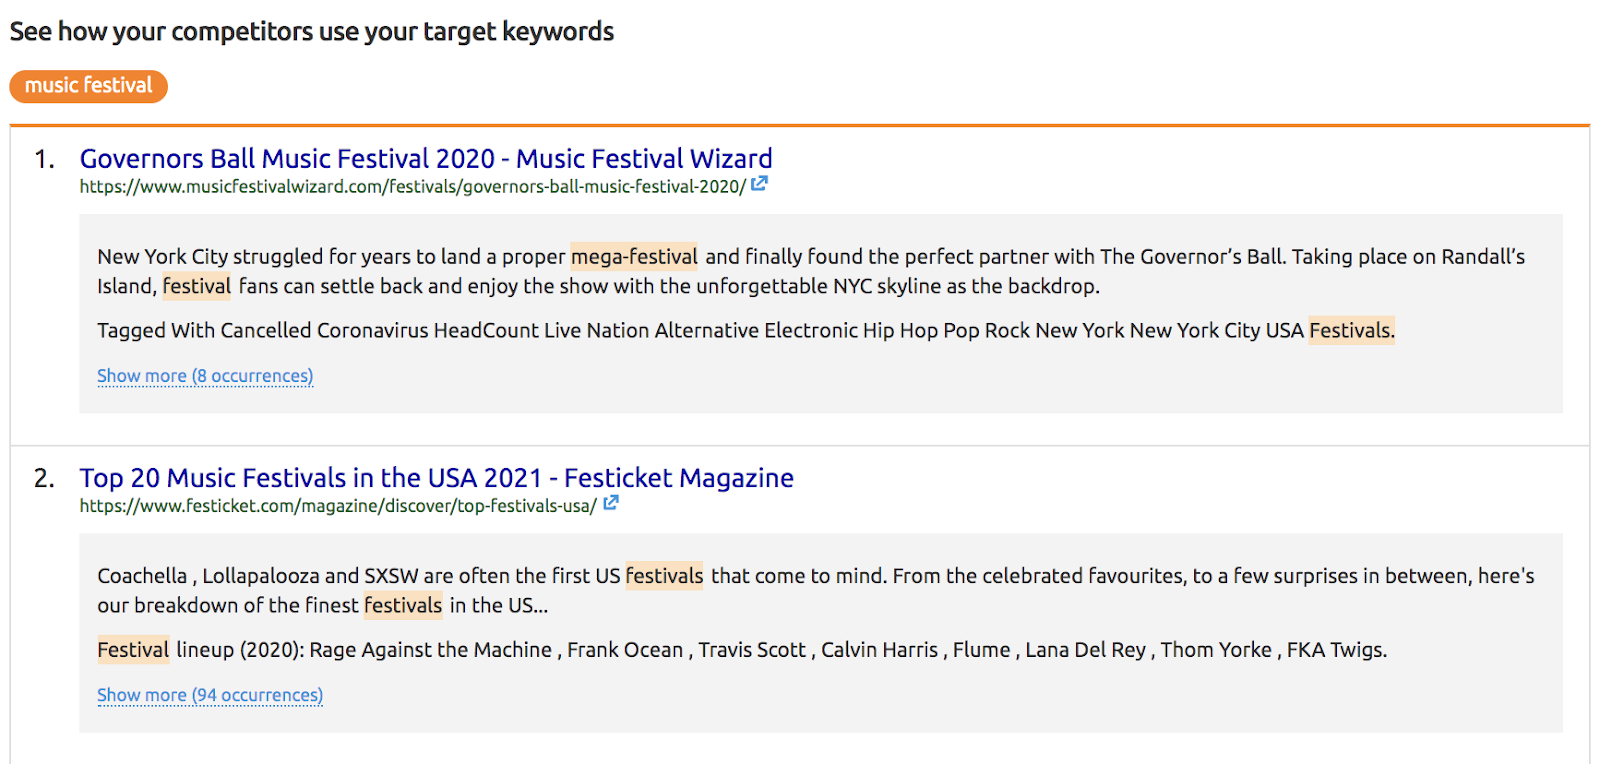 How to analyze your competitors content for a target keyword